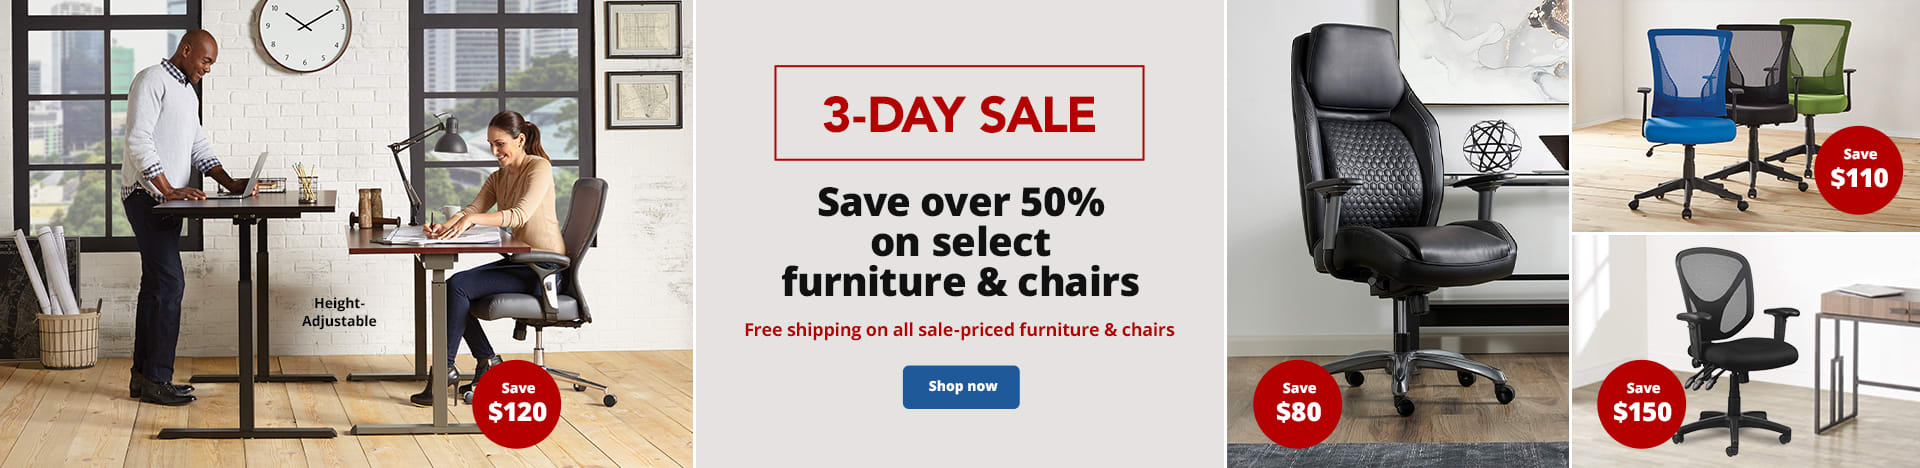 3-Day Sale. Save over 50% on select furniture & chairs. Free shipping on all sale-priced furniture & chairs